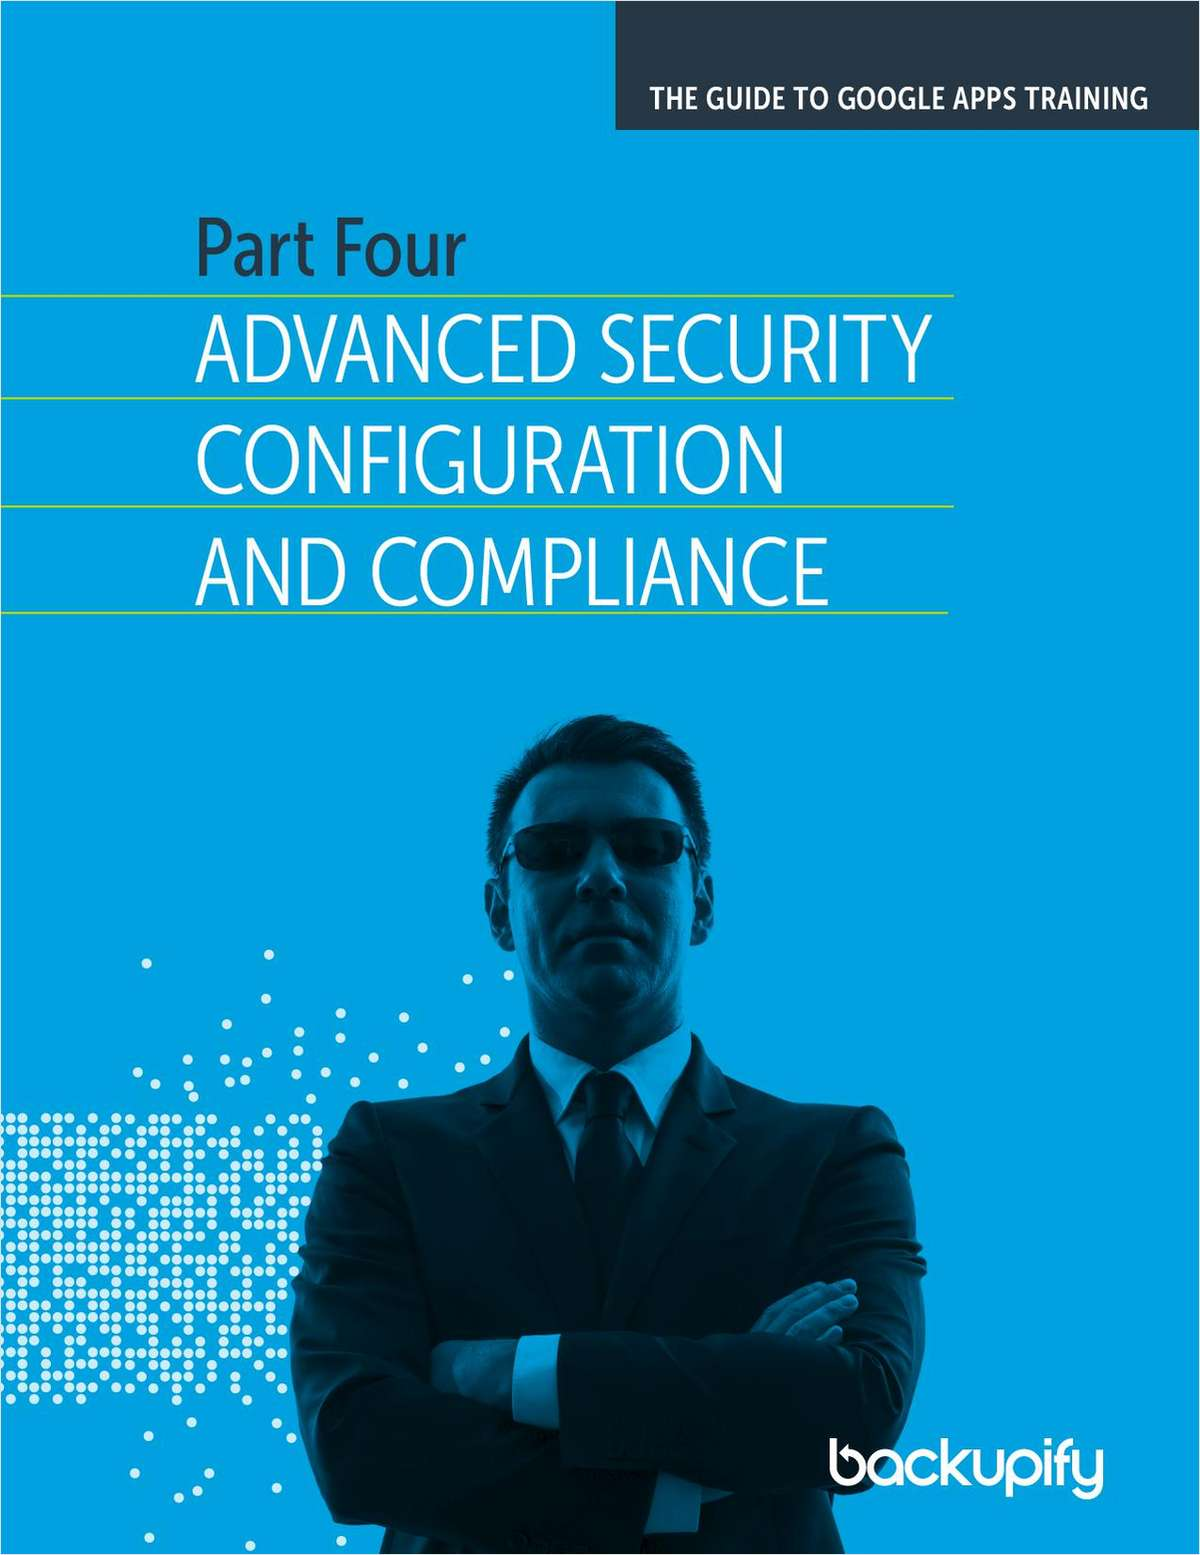 Google Apps Advanced Security Configuration & Compliance - The Complete Guide